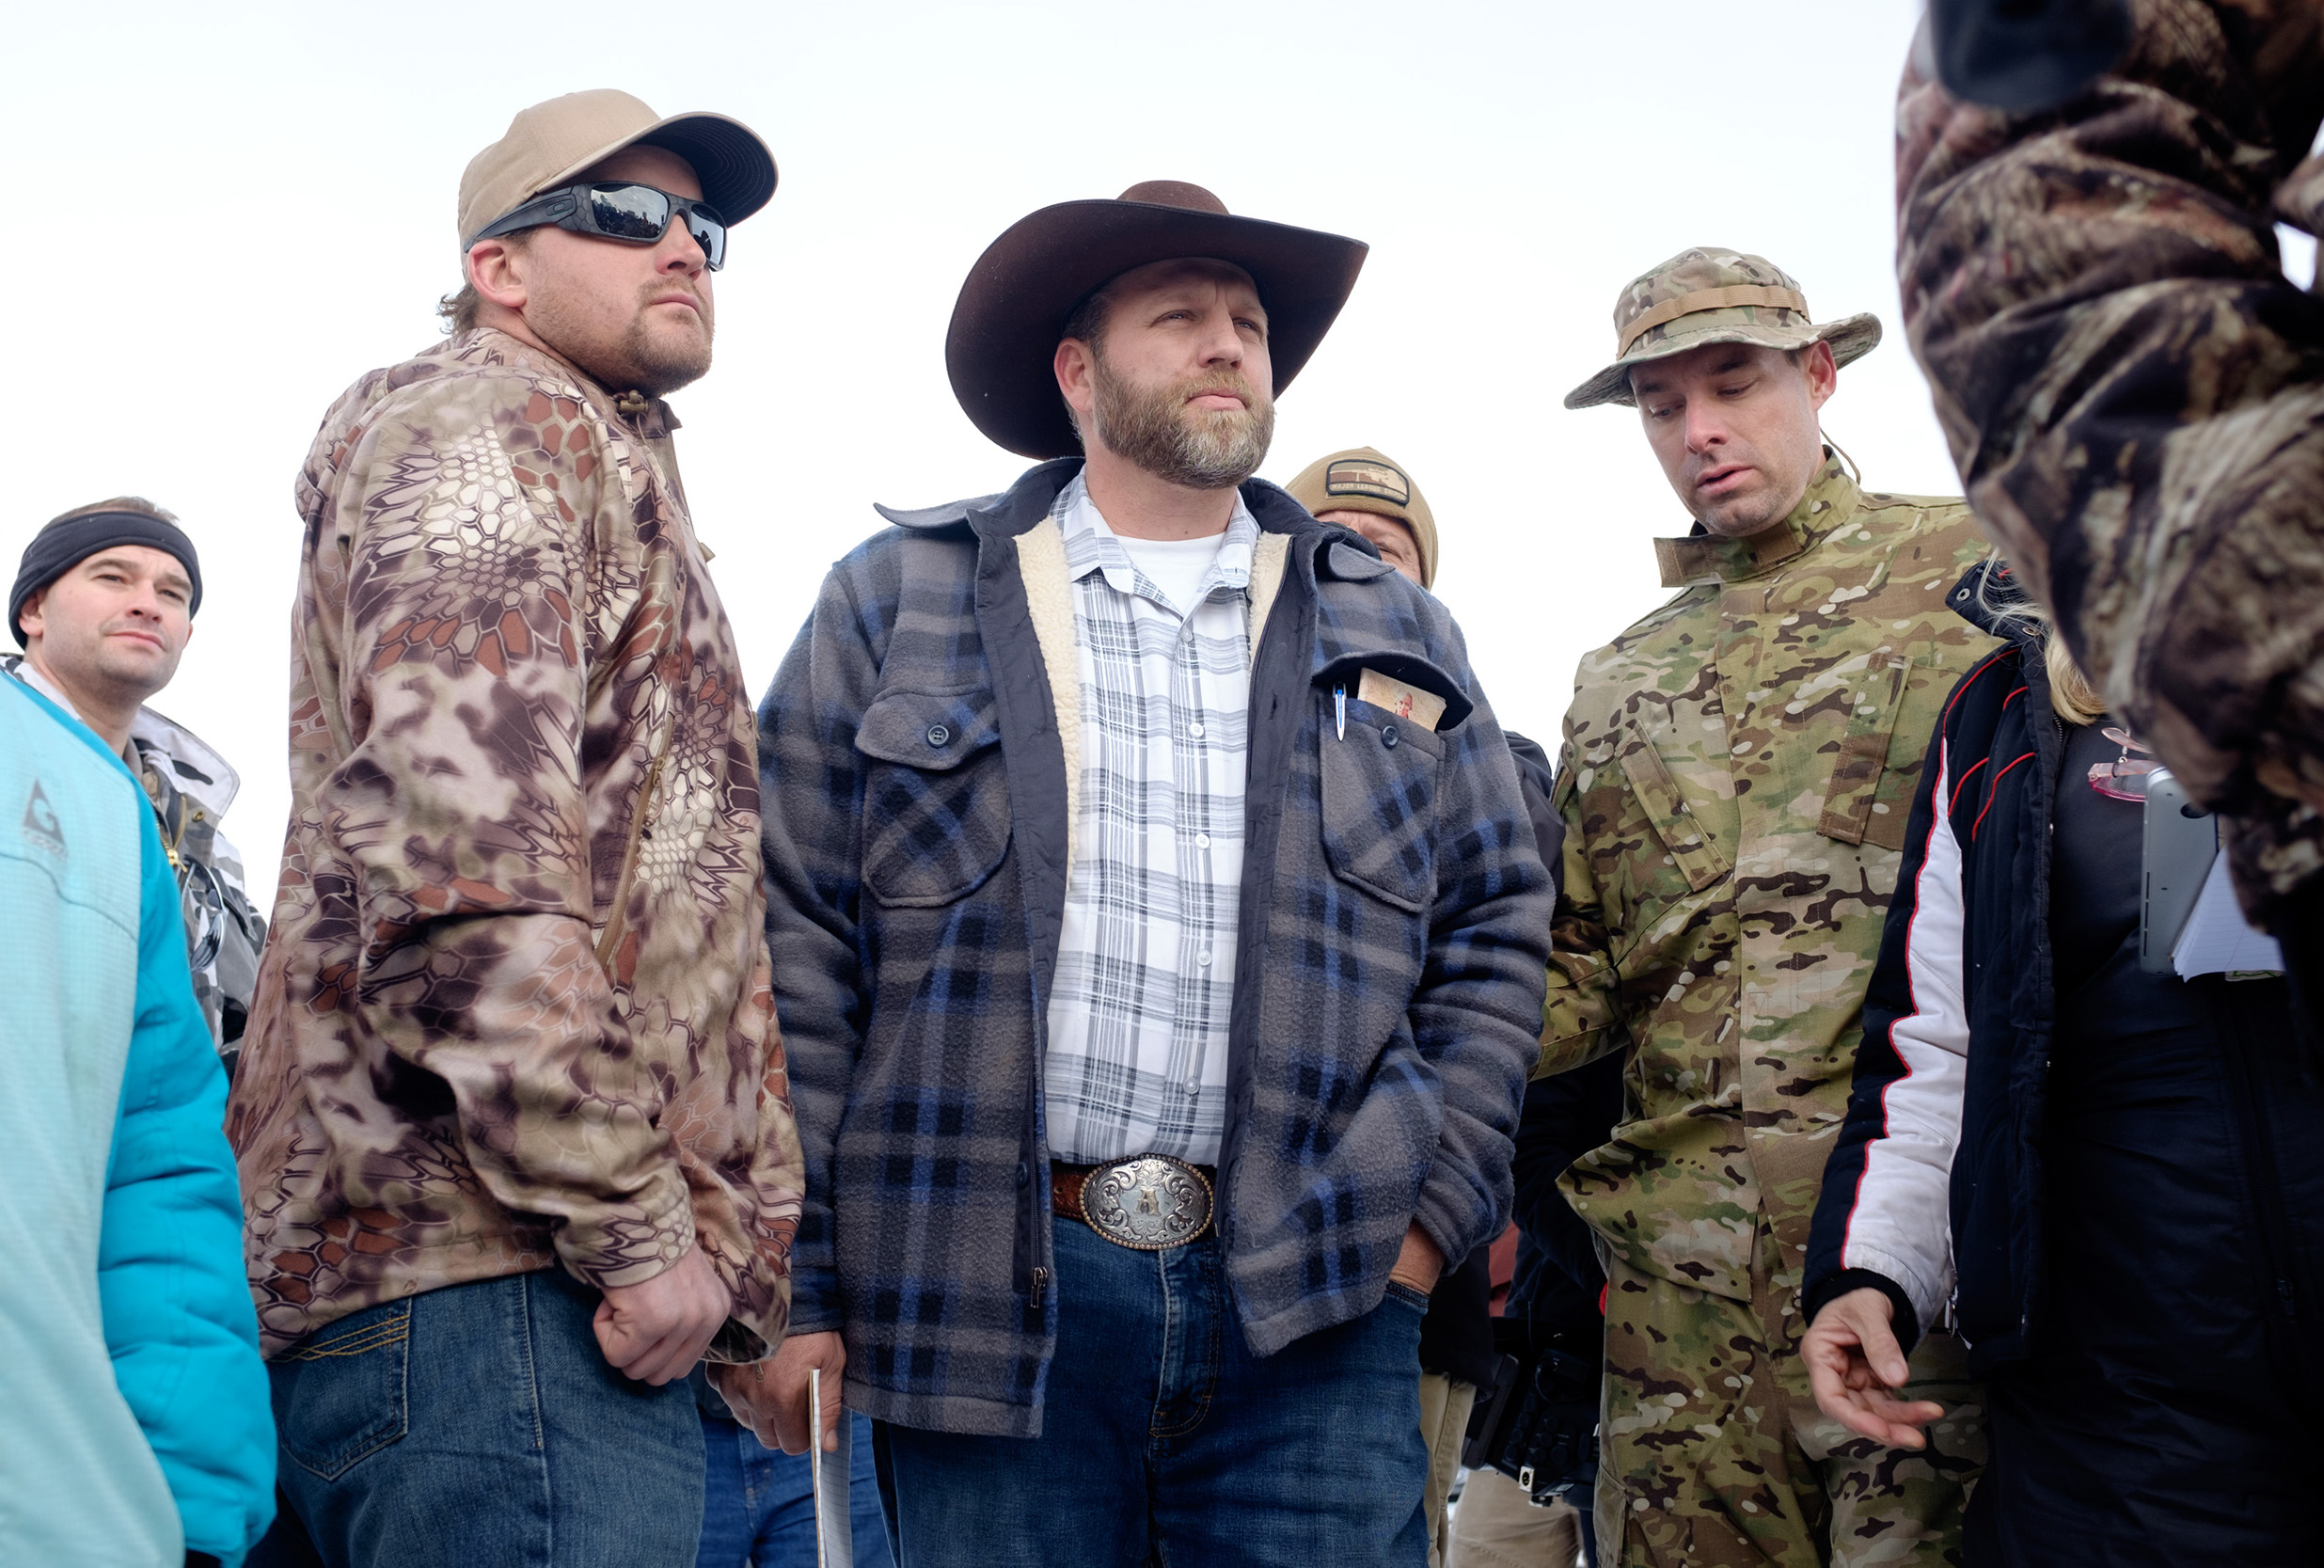 Ammon Bundy(C), leader of a group of armed anti-government protesters speaks to the media as other members look on at the Malheur National Wildlife Refuge near Burns, Oregon January 4, 2016. The FBI on January 4 sought a peaceful end to the occupation by armed anti-government militia members at a US federal wildlife reserve in rural Oregon, as the standoff entered its third day. The loose-knit band of farmers, ranchers and survivalists -- whose action was sparked by the jailing of two ranchers for arson -- said they would not rule out violence if authorities stormed the site, although federal officials said they hope to avoid bloodshed. AFP PHOTO / ROB KERR / AFP / ROB KERR        (Photo credit should read ROB KERR/AFP/Getty Images)